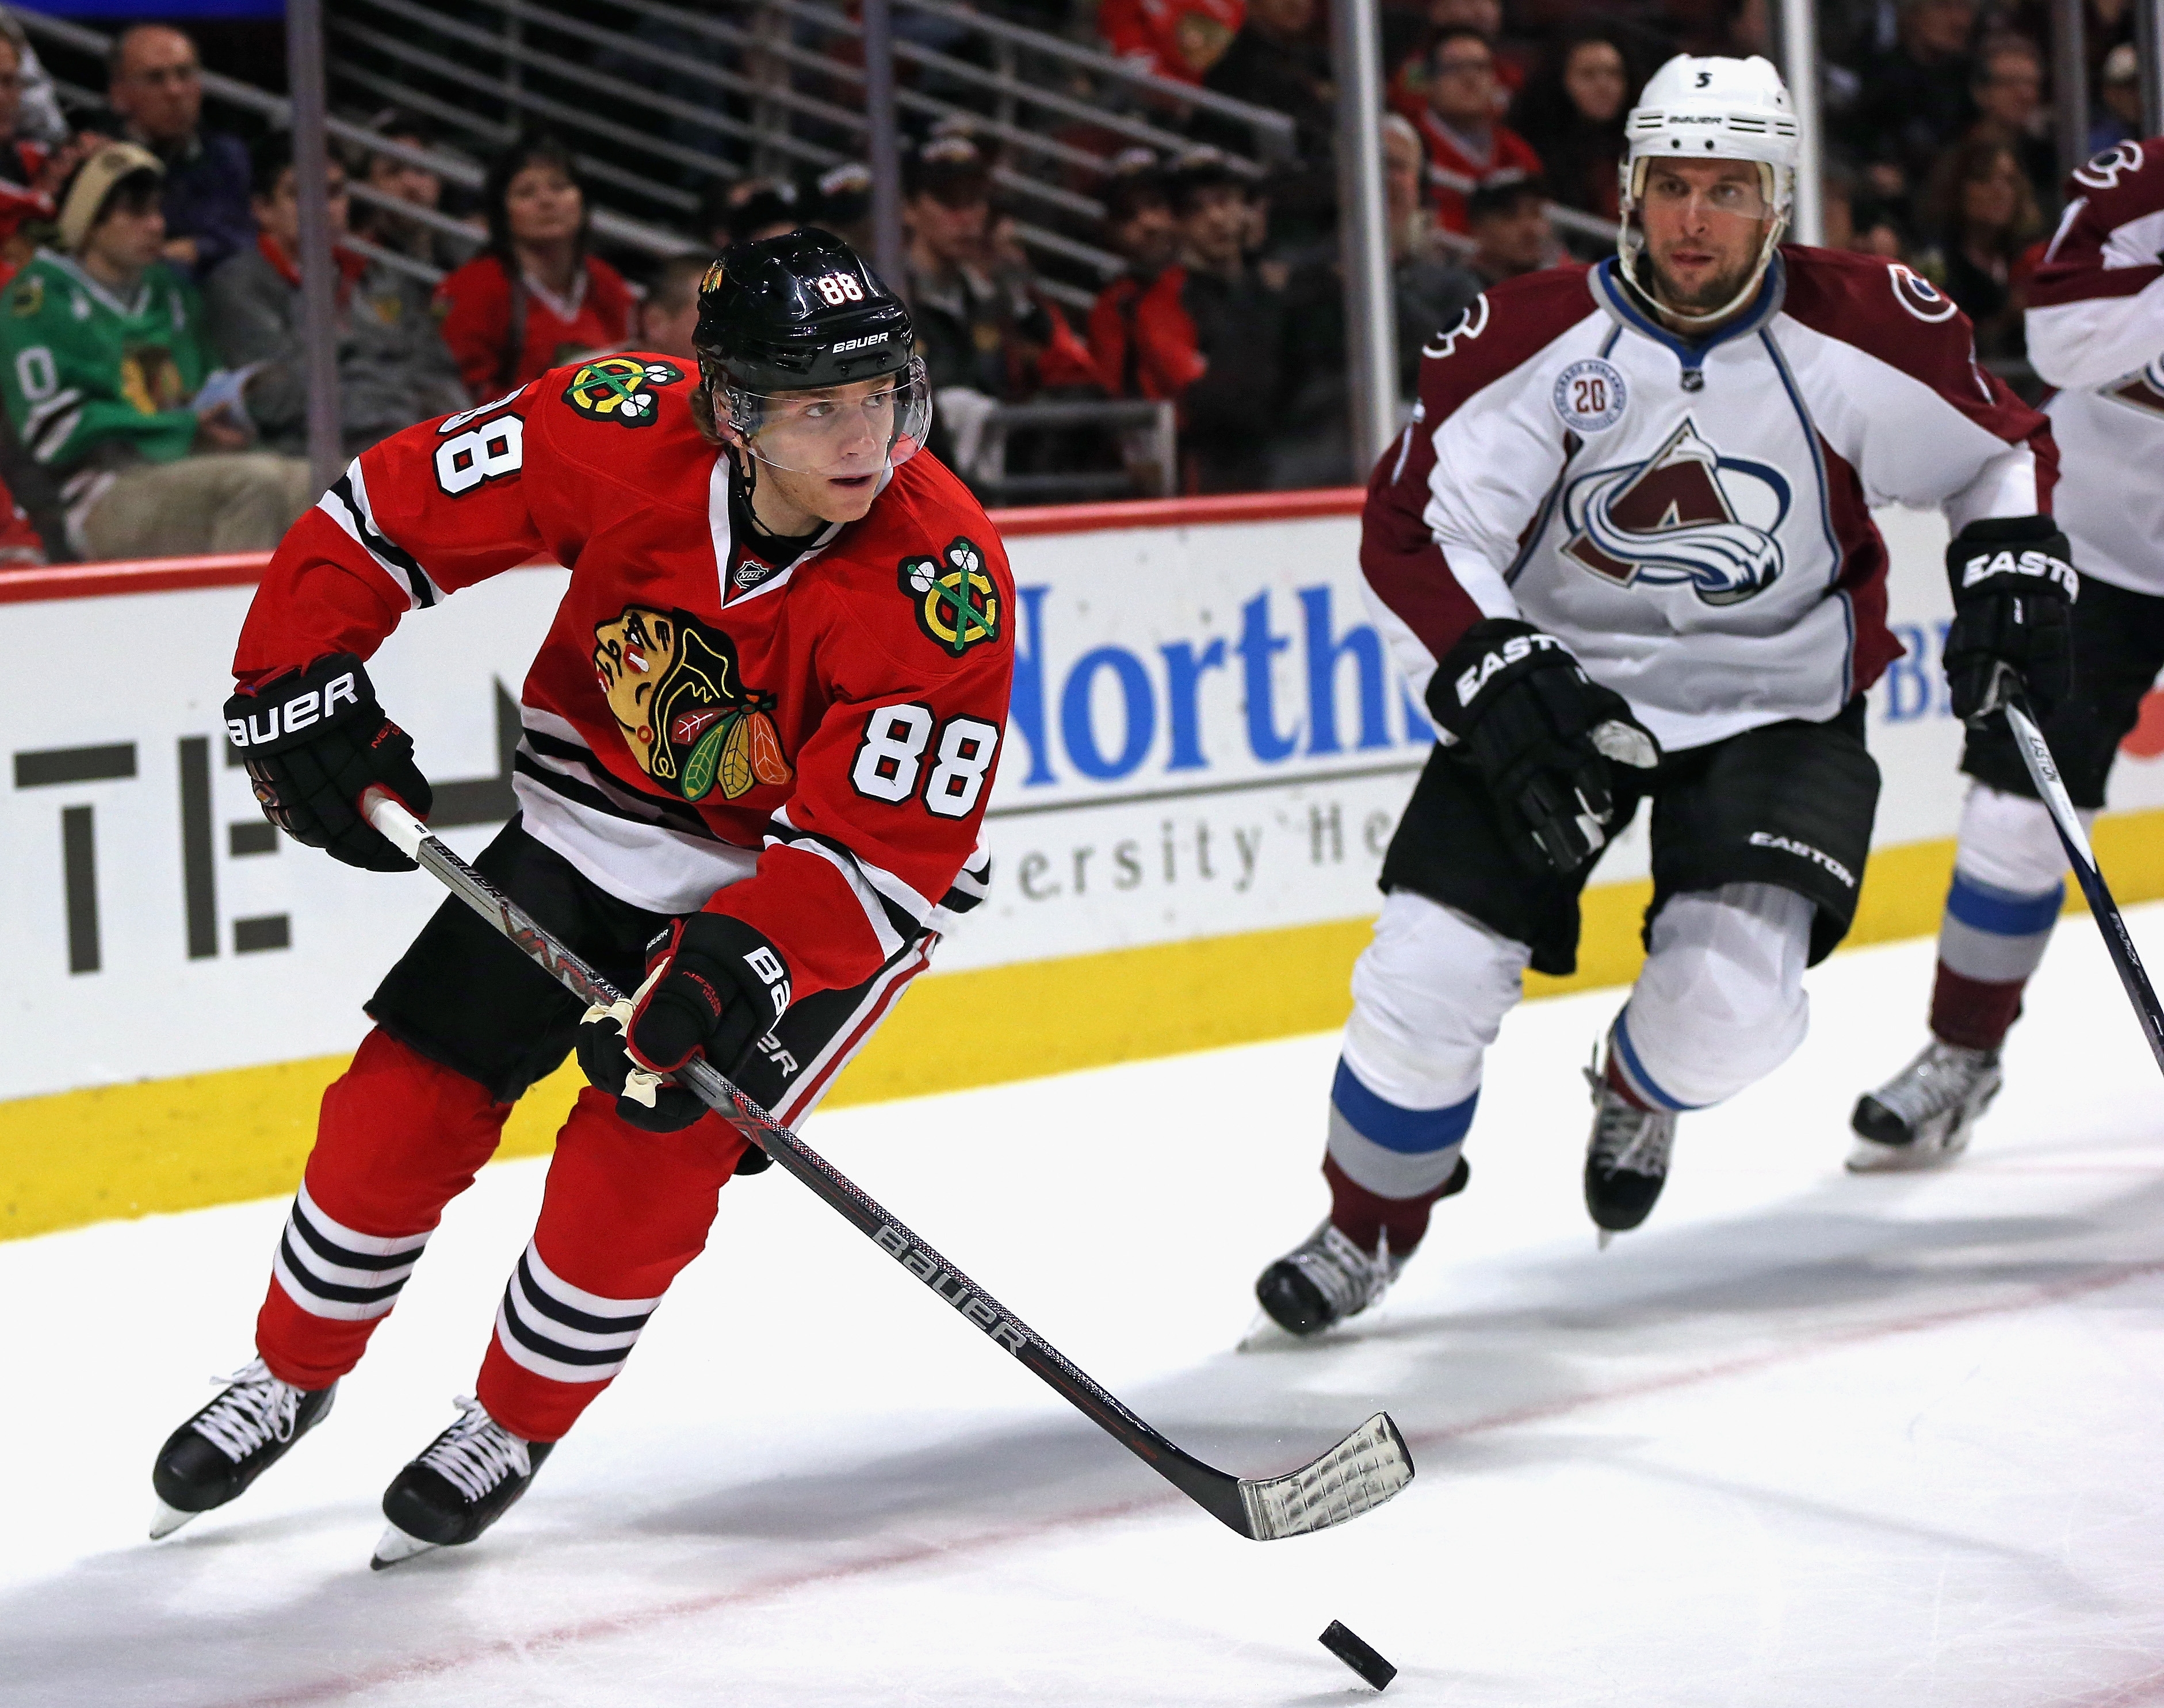 CHICAGO, IL - DECEMBER 15:  Patrick Kane #88 of the Chicago Blackhawks looks to pass as Nate Guenin #5 of the Colorado Avalanche closes in at the United Center on December 15, 2015 in Chicago, Illinois. The Avalanche defeated the Blackhawks 3-0.  (Photo by Jonathan Daniel/Getty Images)